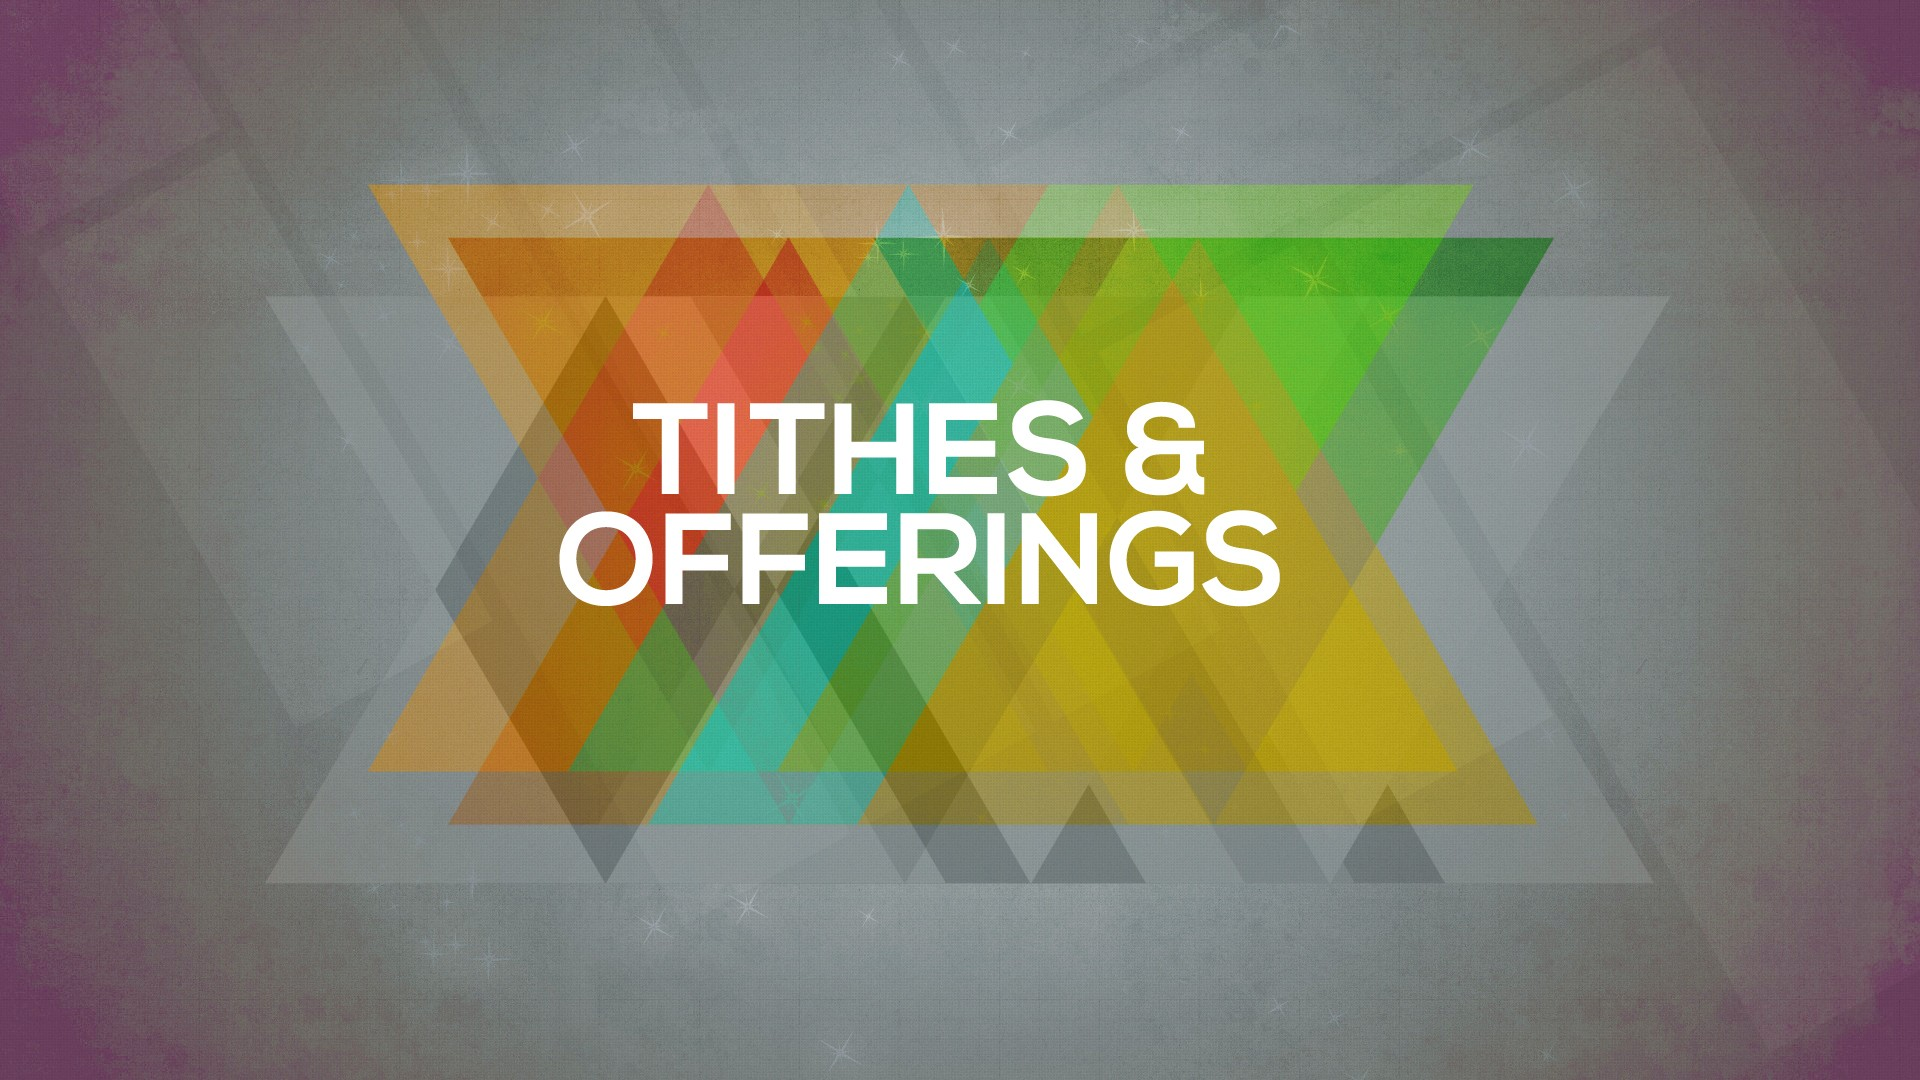 Tithes Offerings Crossroads Wesleyan Church 1920x1080